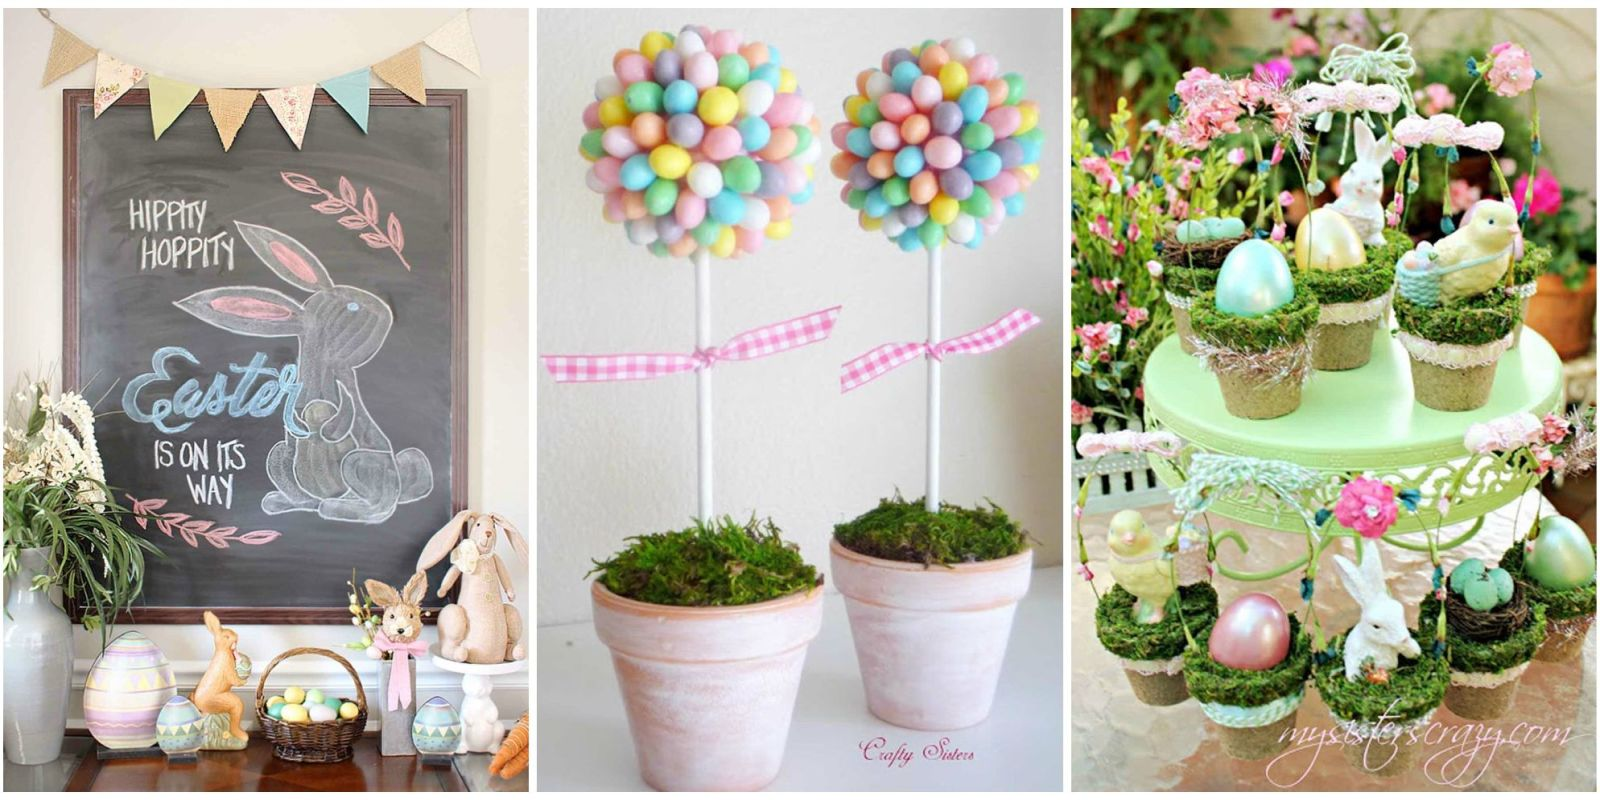 20 diy easter decorations to make homemade easter for Easter home decorations